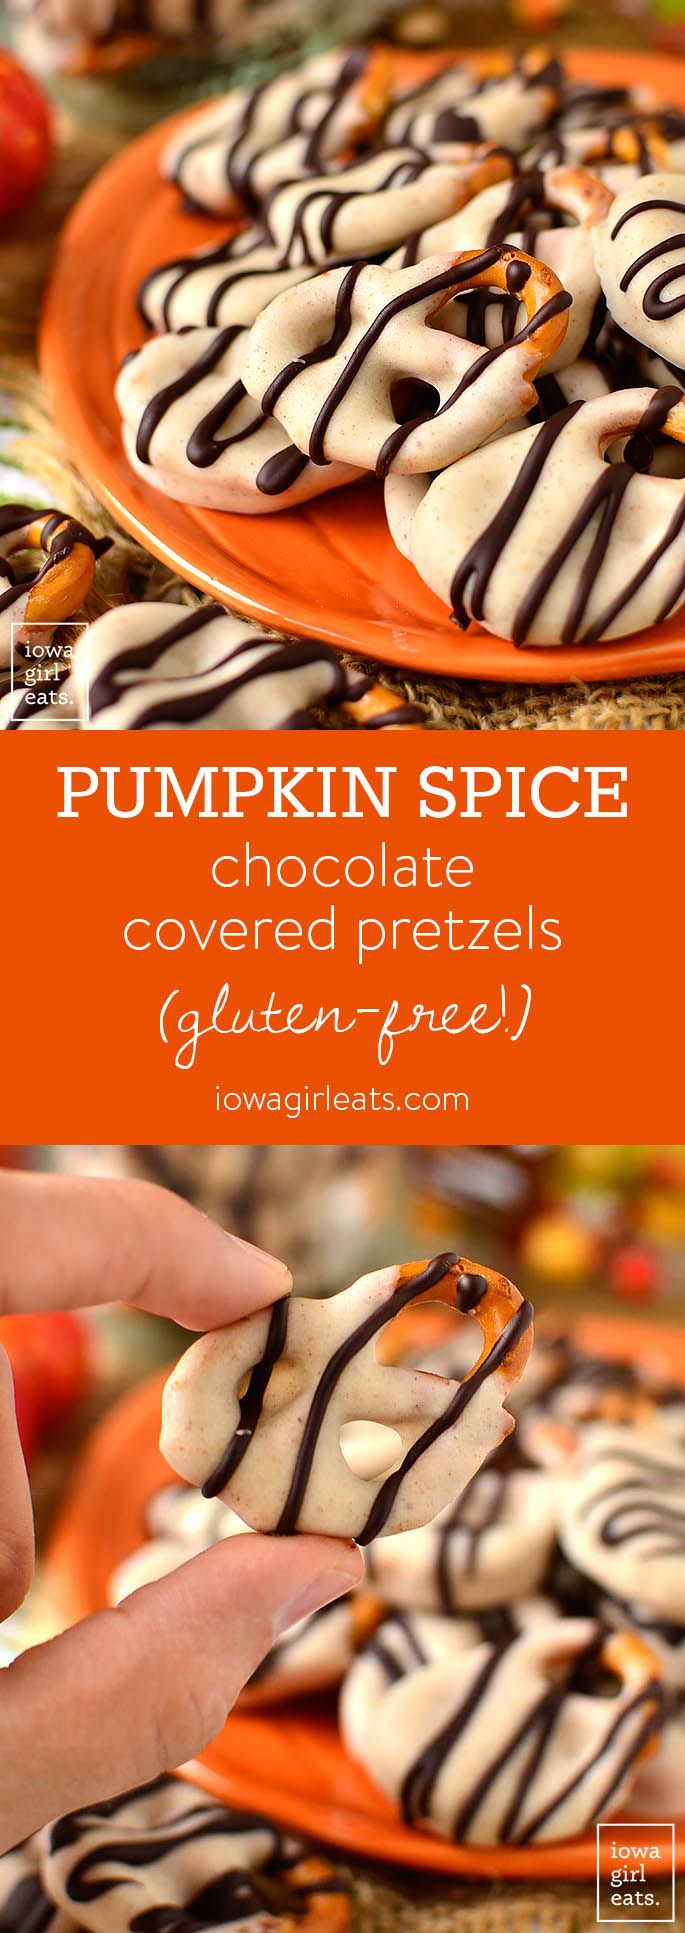 Pumpkin Spice Chocolate Covered Pretzels are absolutely irresistable…dare you to stop at just one! This easy gluten-free dessert recipe calls for just 4 ingredients. | iowagirleats.com